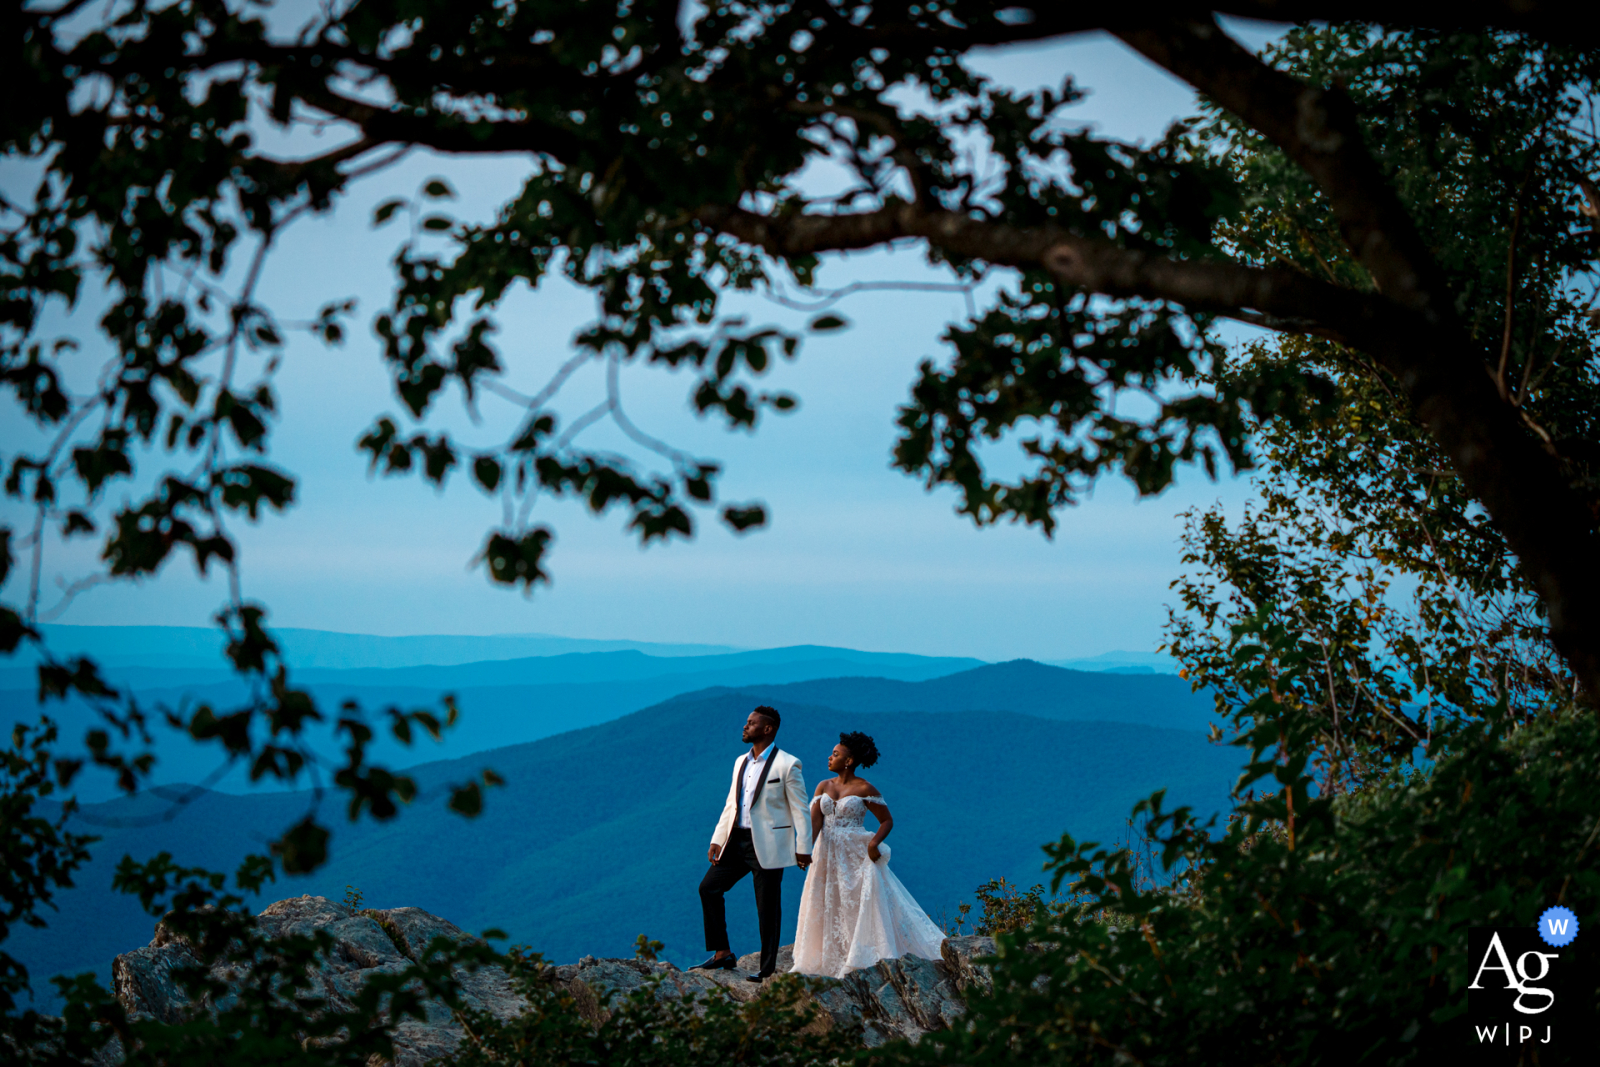 Artistic wedding photo from Little Stoneyman, Shenandoah National Park showing Hand in hand, the couple is proud of their relationship